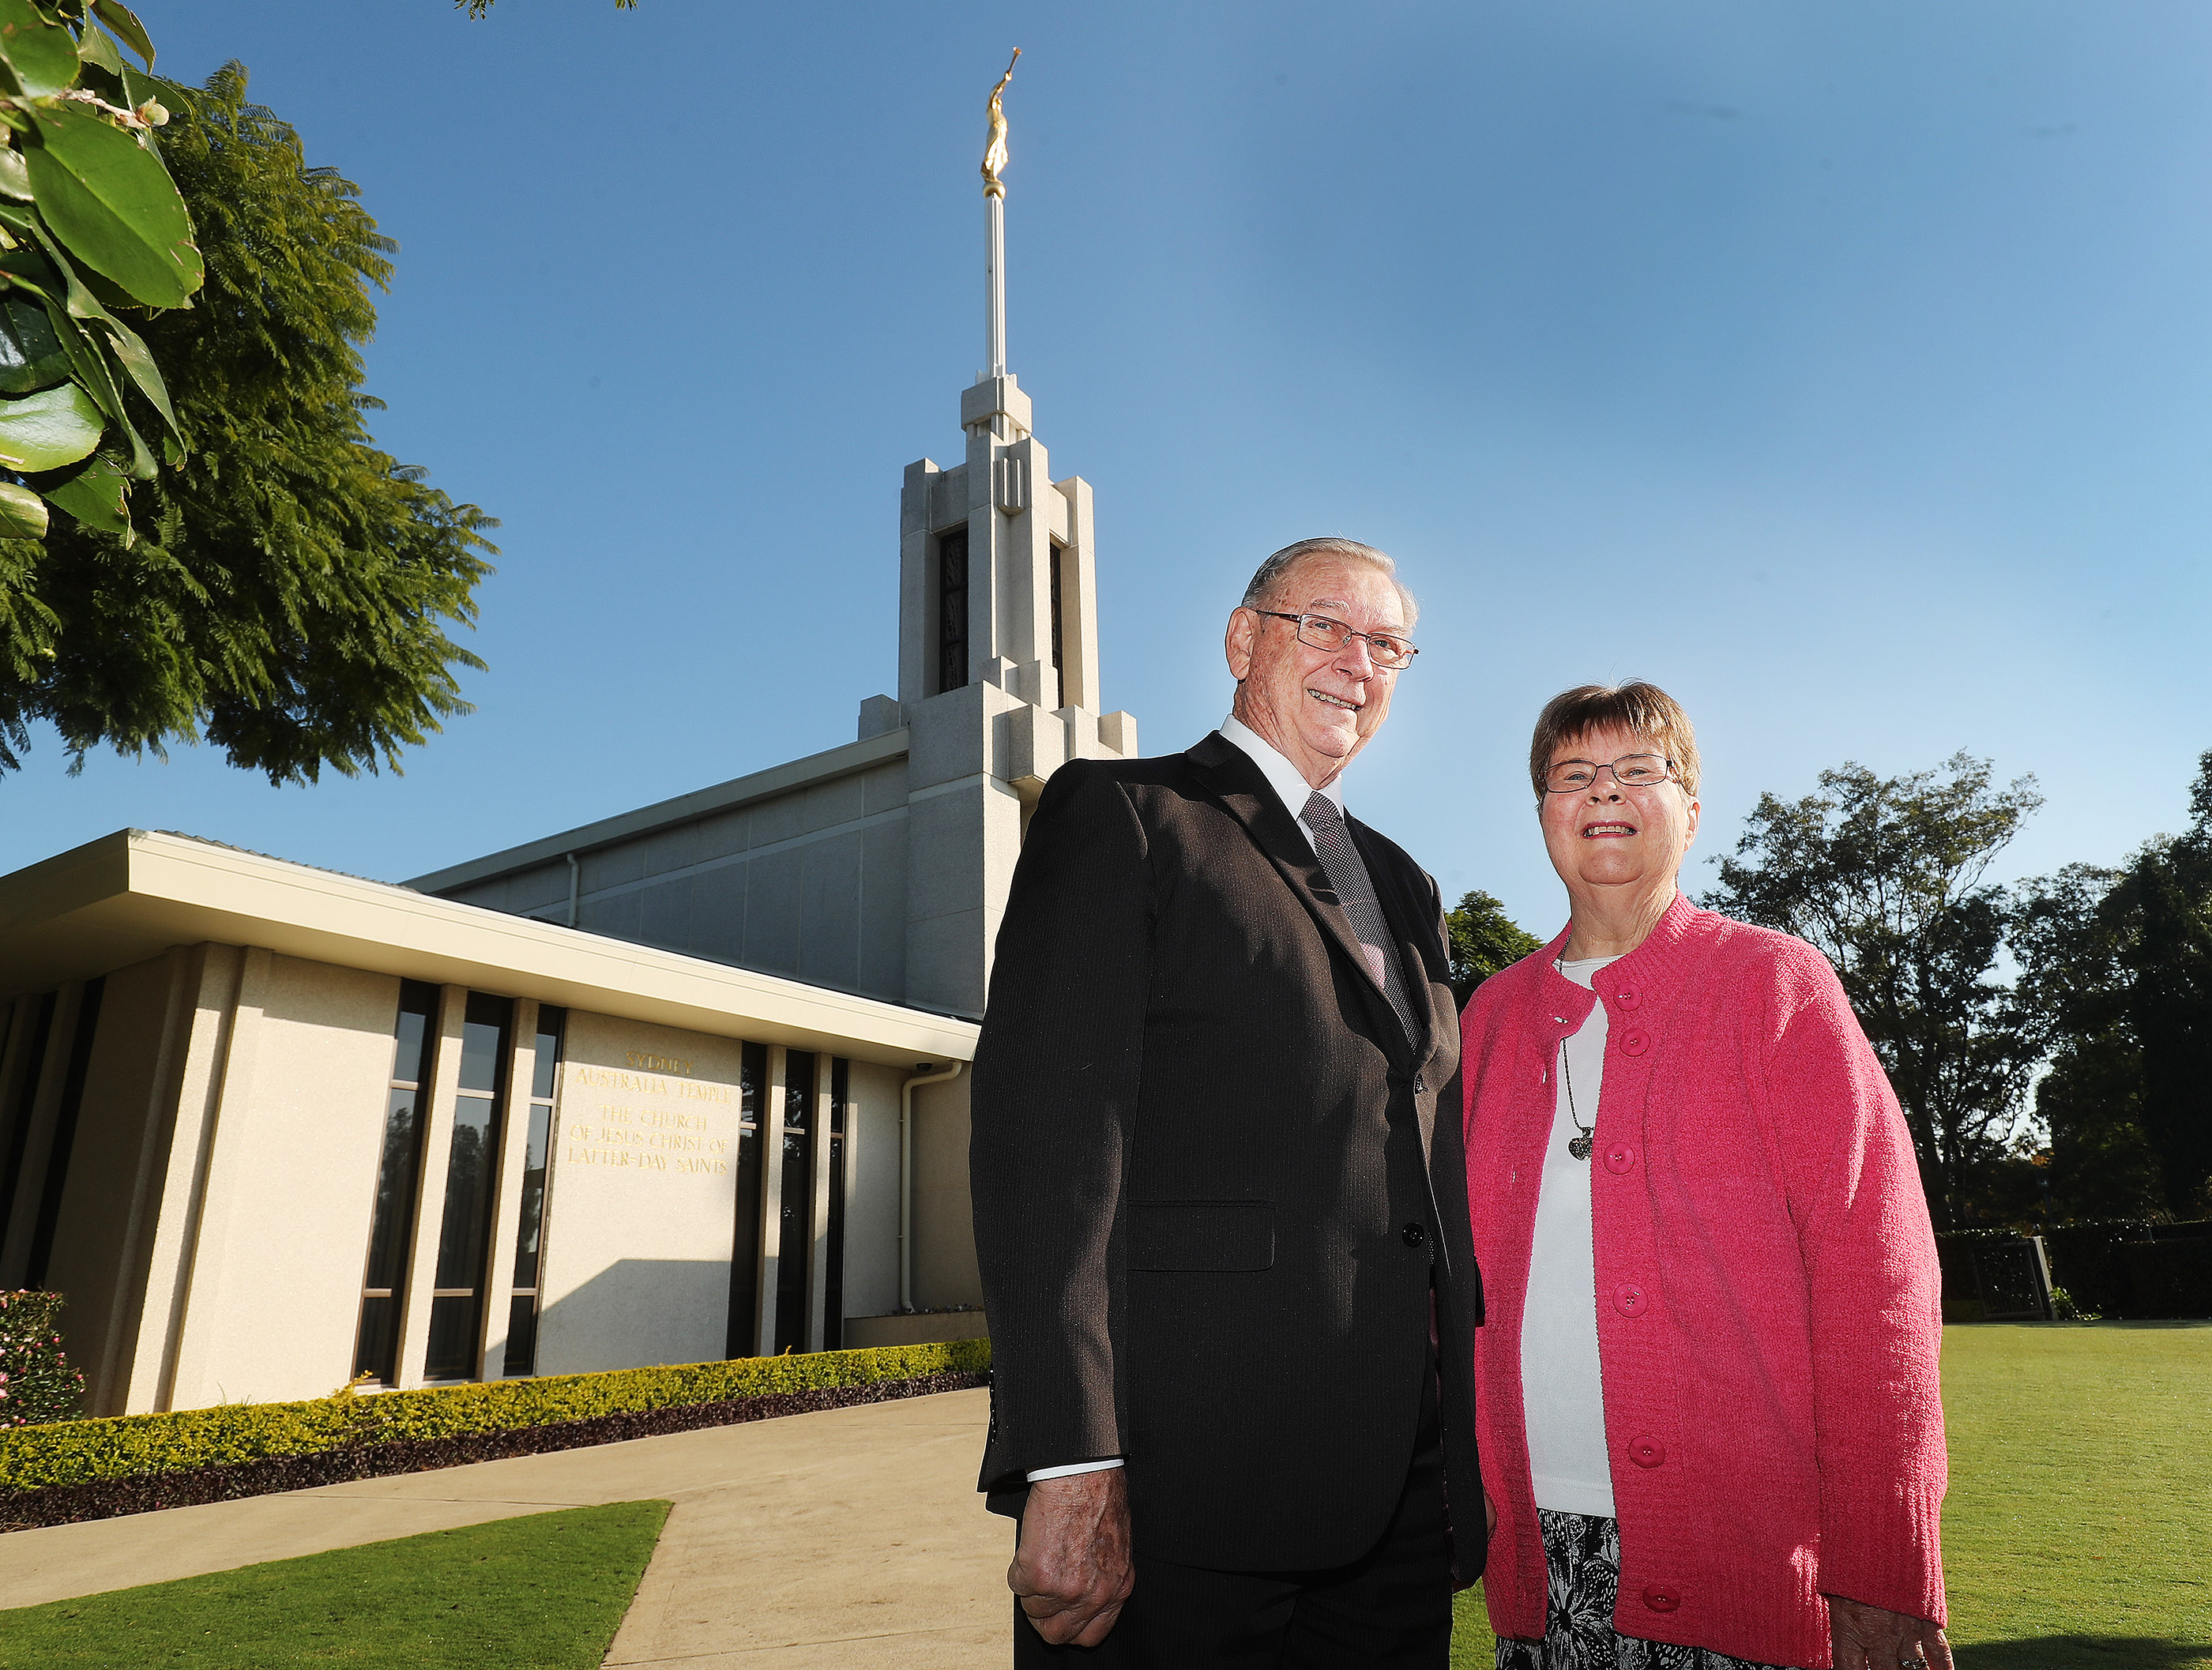 Paul and Diane Parton stand near the Sydney Australia Temple on May 18, 2019, in Sydney, Australia.